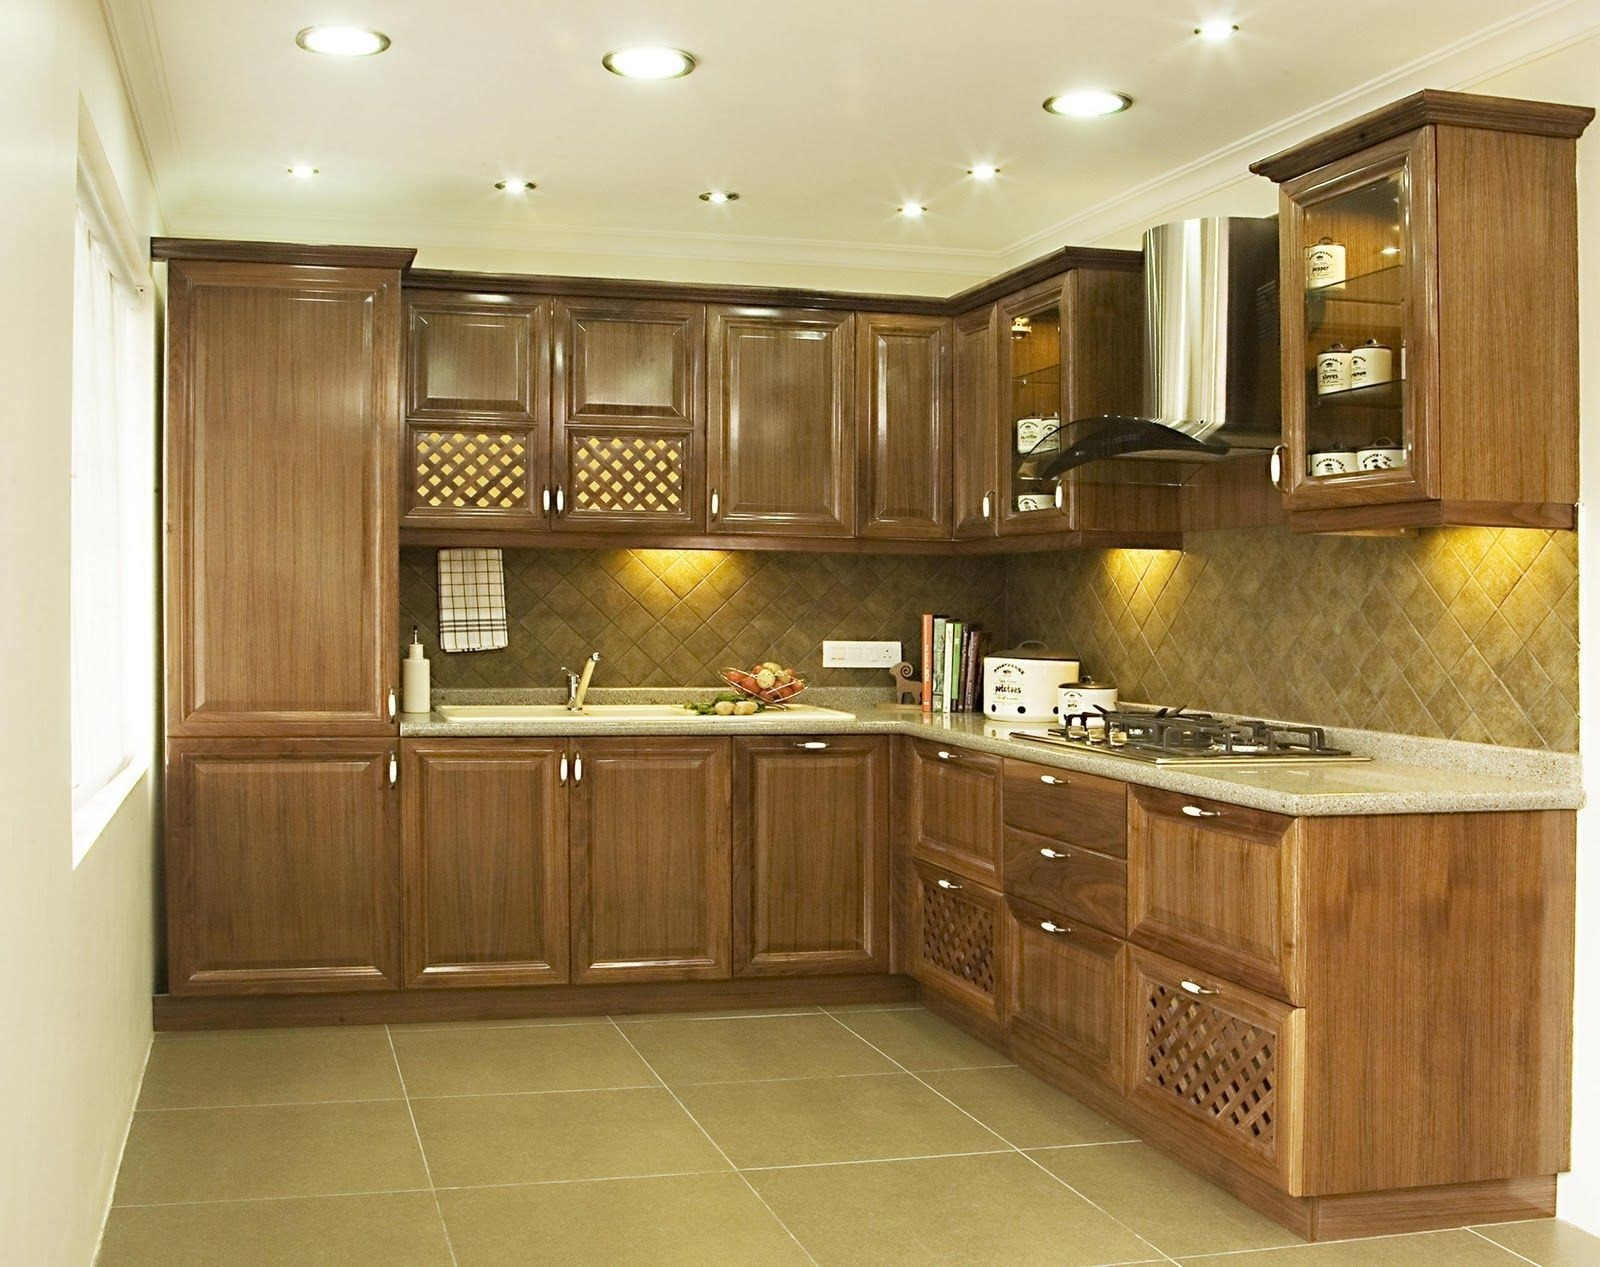 Some Smart Bud Oriented Home Renovation Ideas Simple Small Bud Kitchen Renovation Design Featuring Modular Wooden